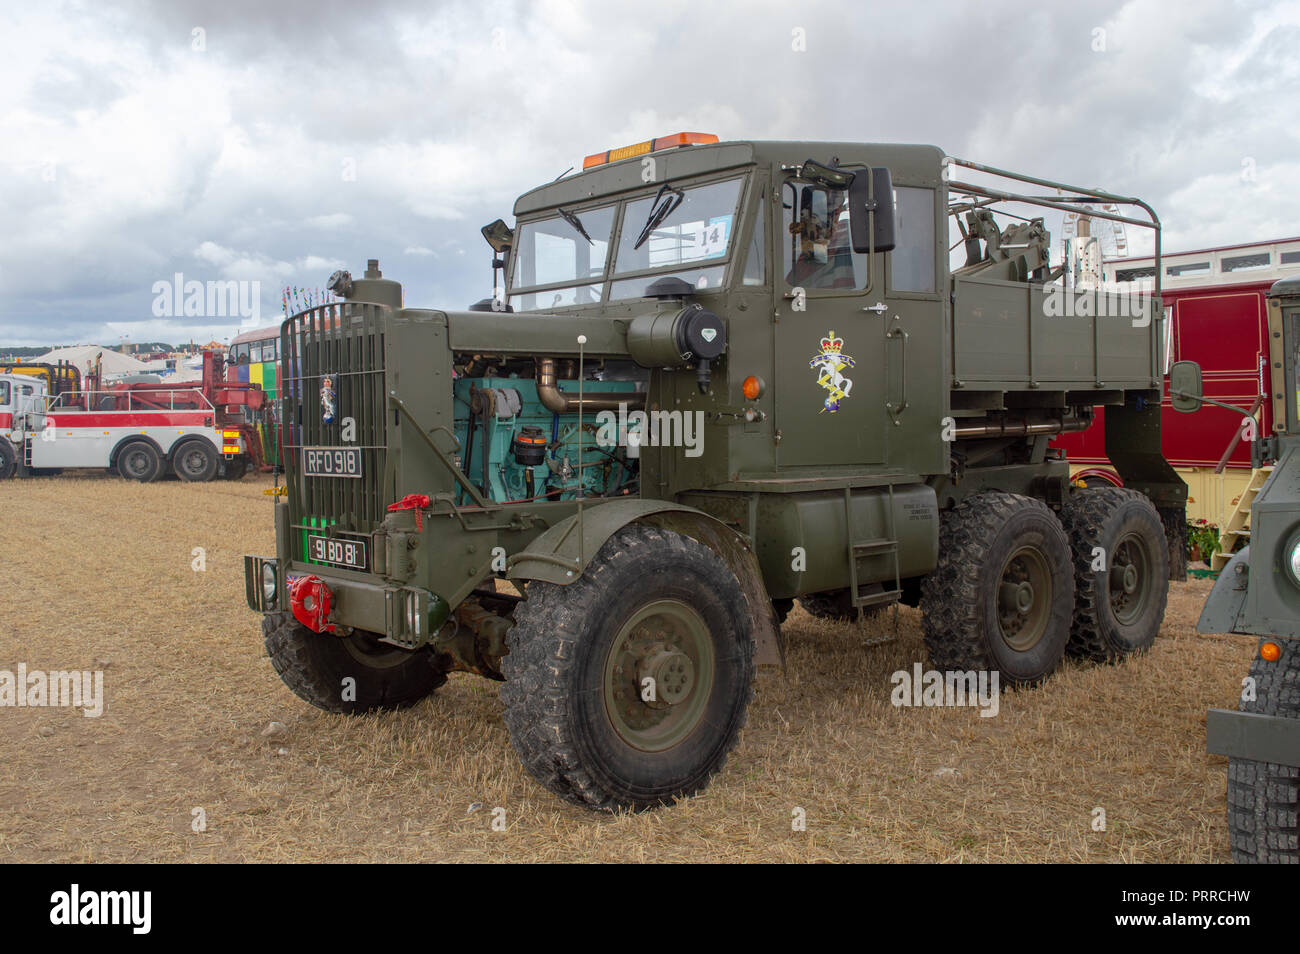 Scammell Explorer 1953 RFO 918 with REME badge on doors and grill on display at the Dorset Steam fair - Stock Image